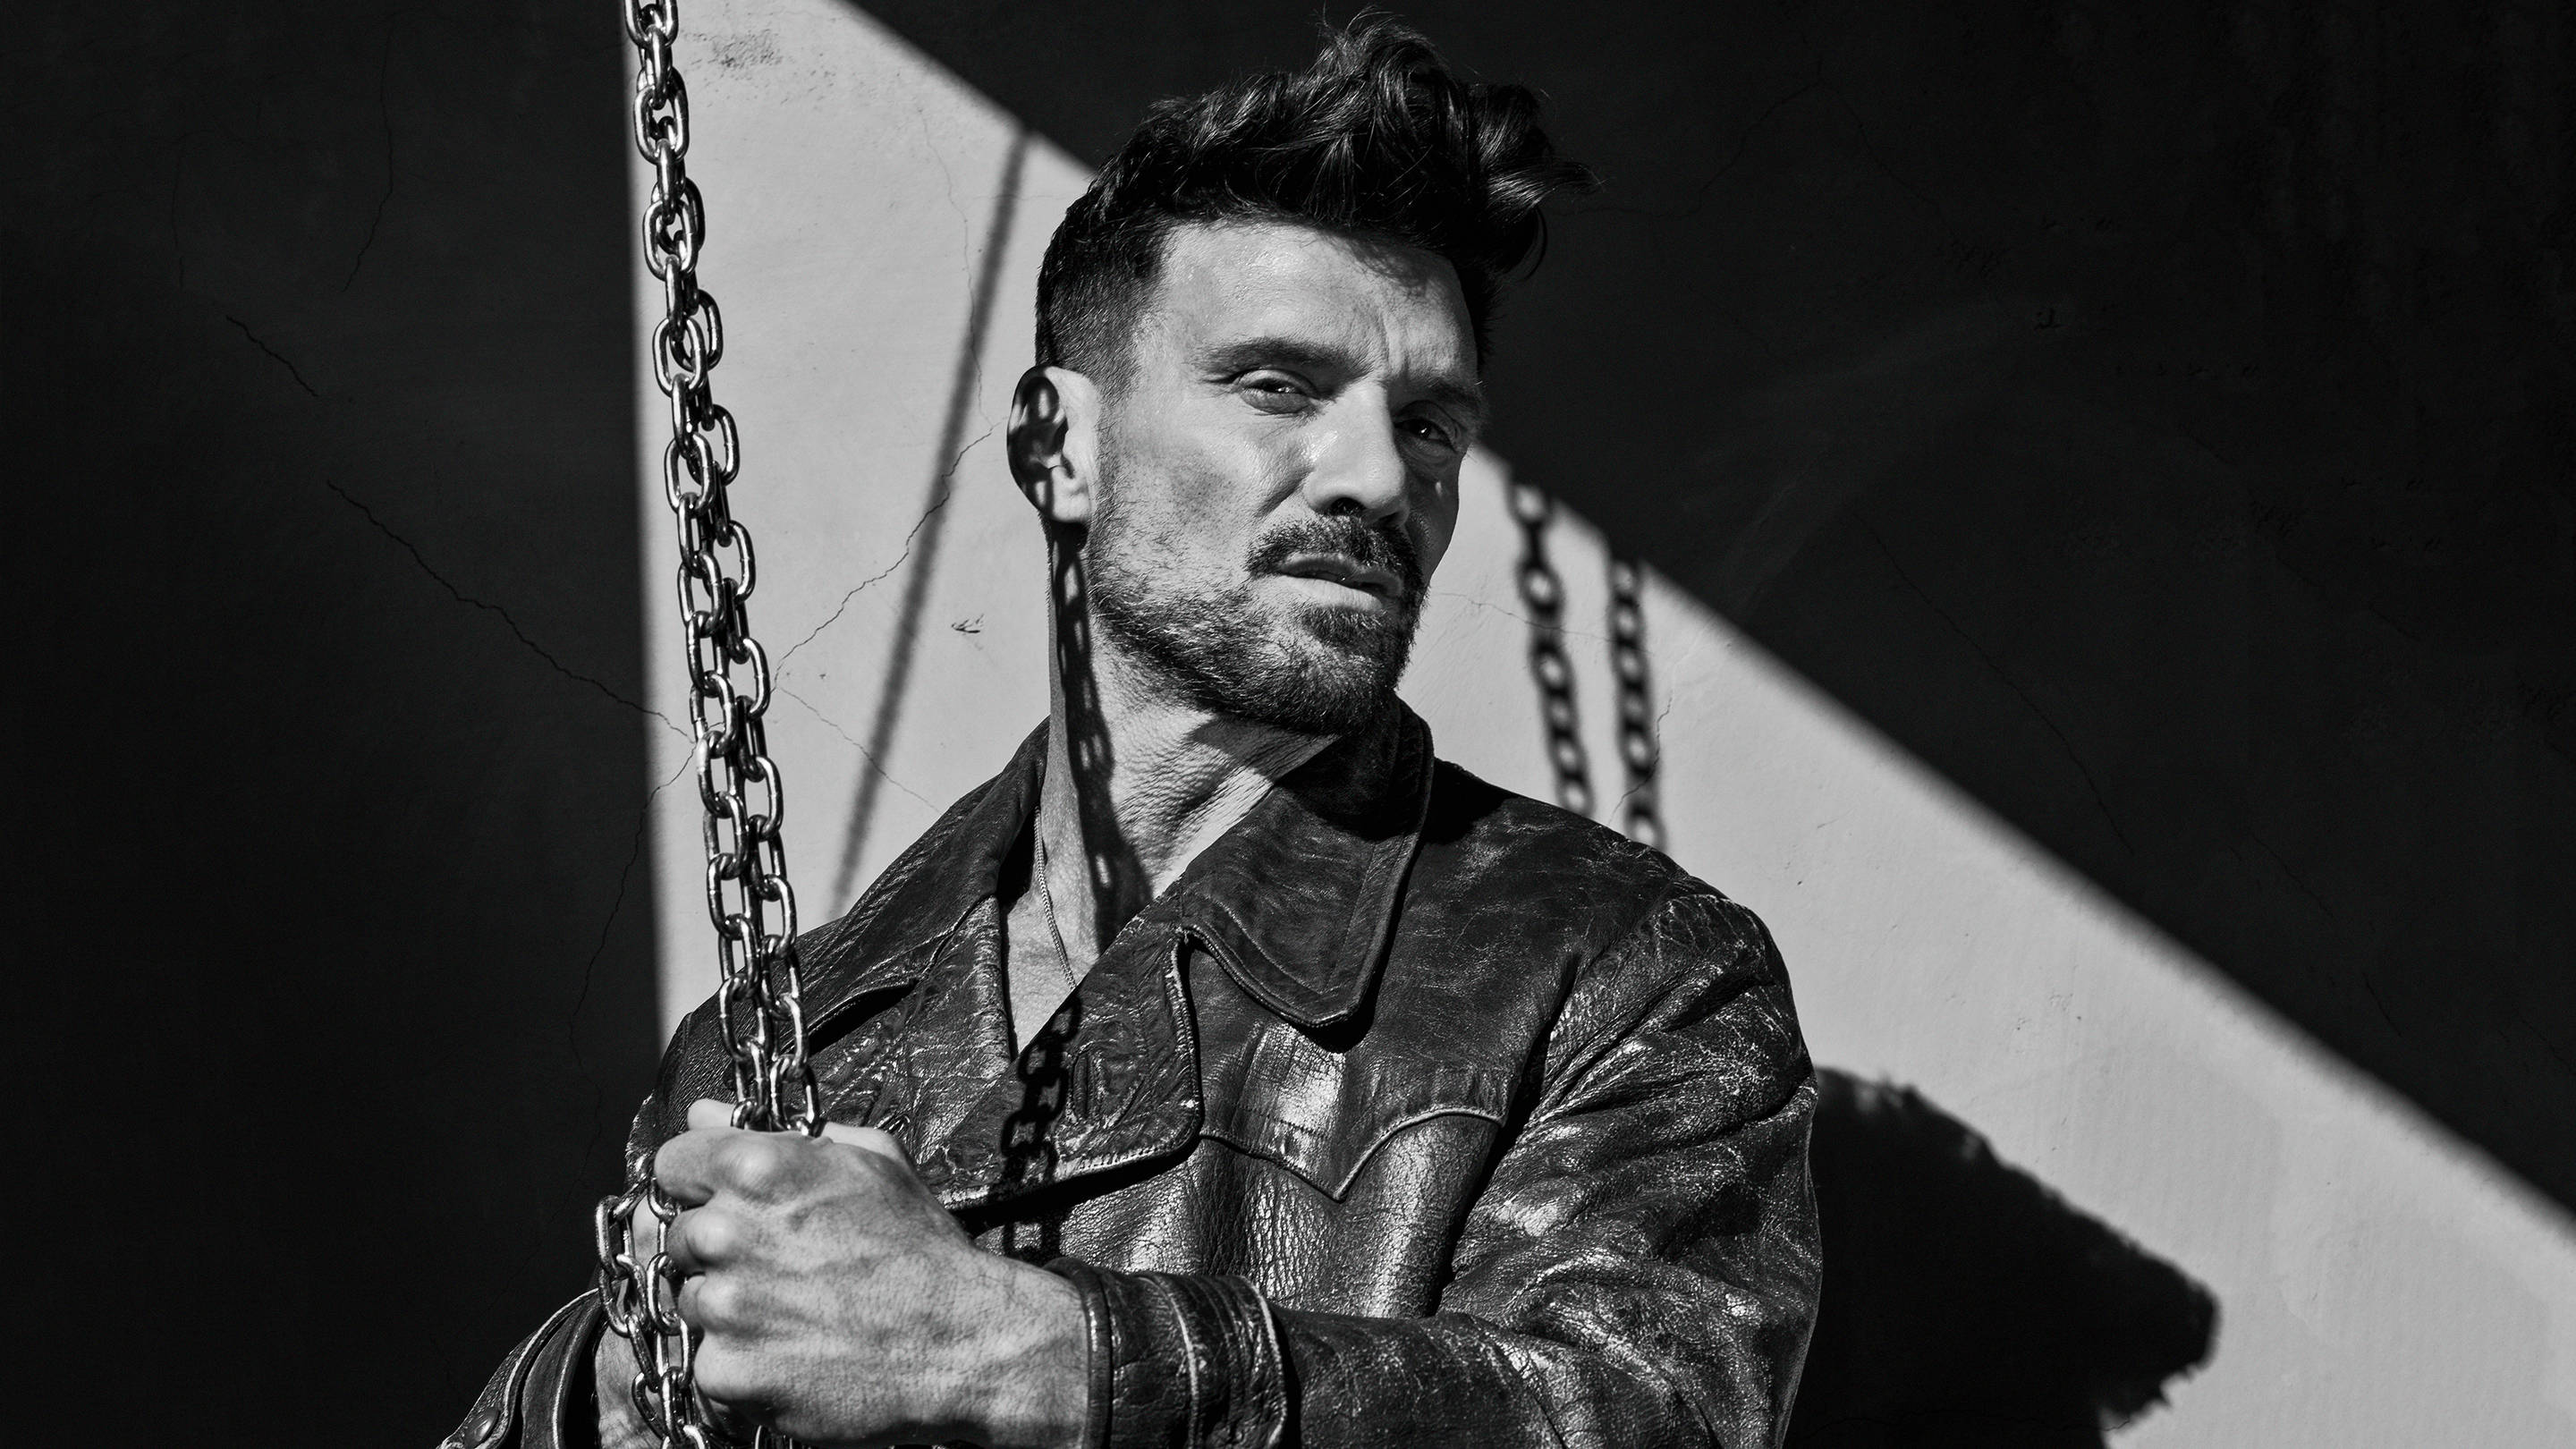 Frank Grillo for Playboy by Ryan Pfluger